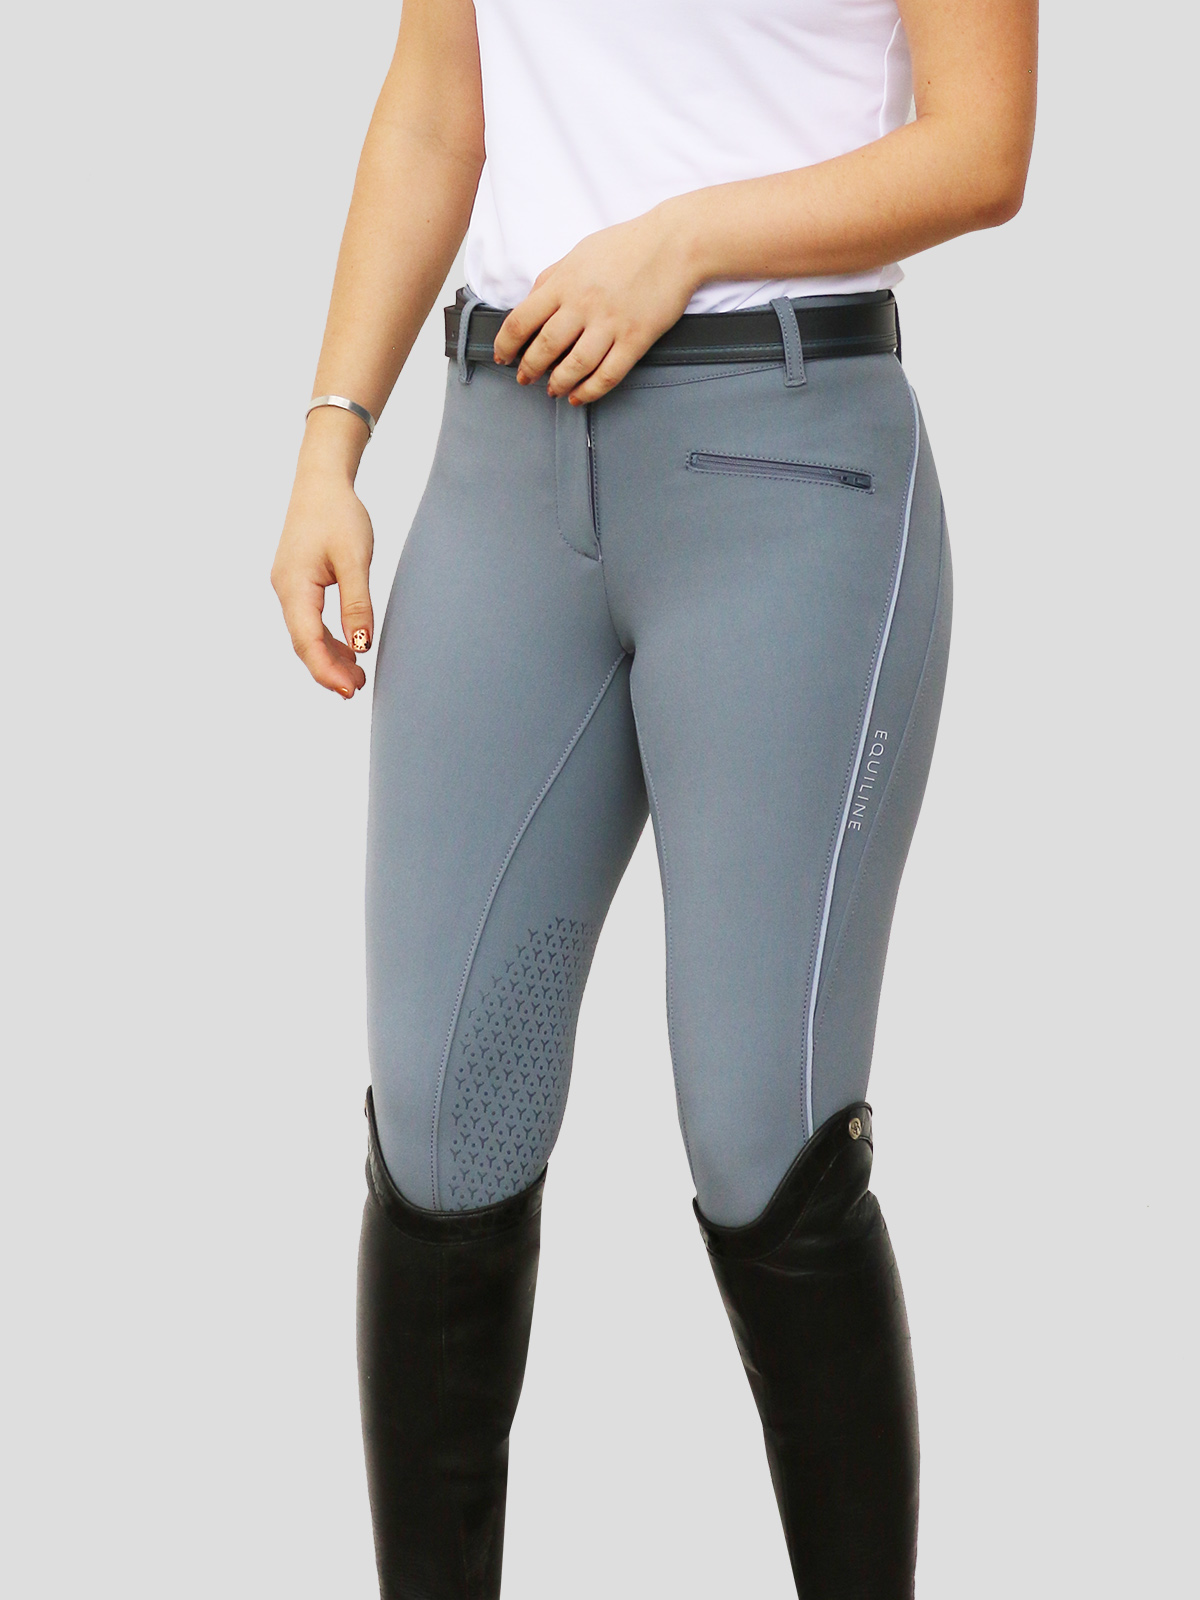 CAMILA KNEE GRIP BREECHES 5